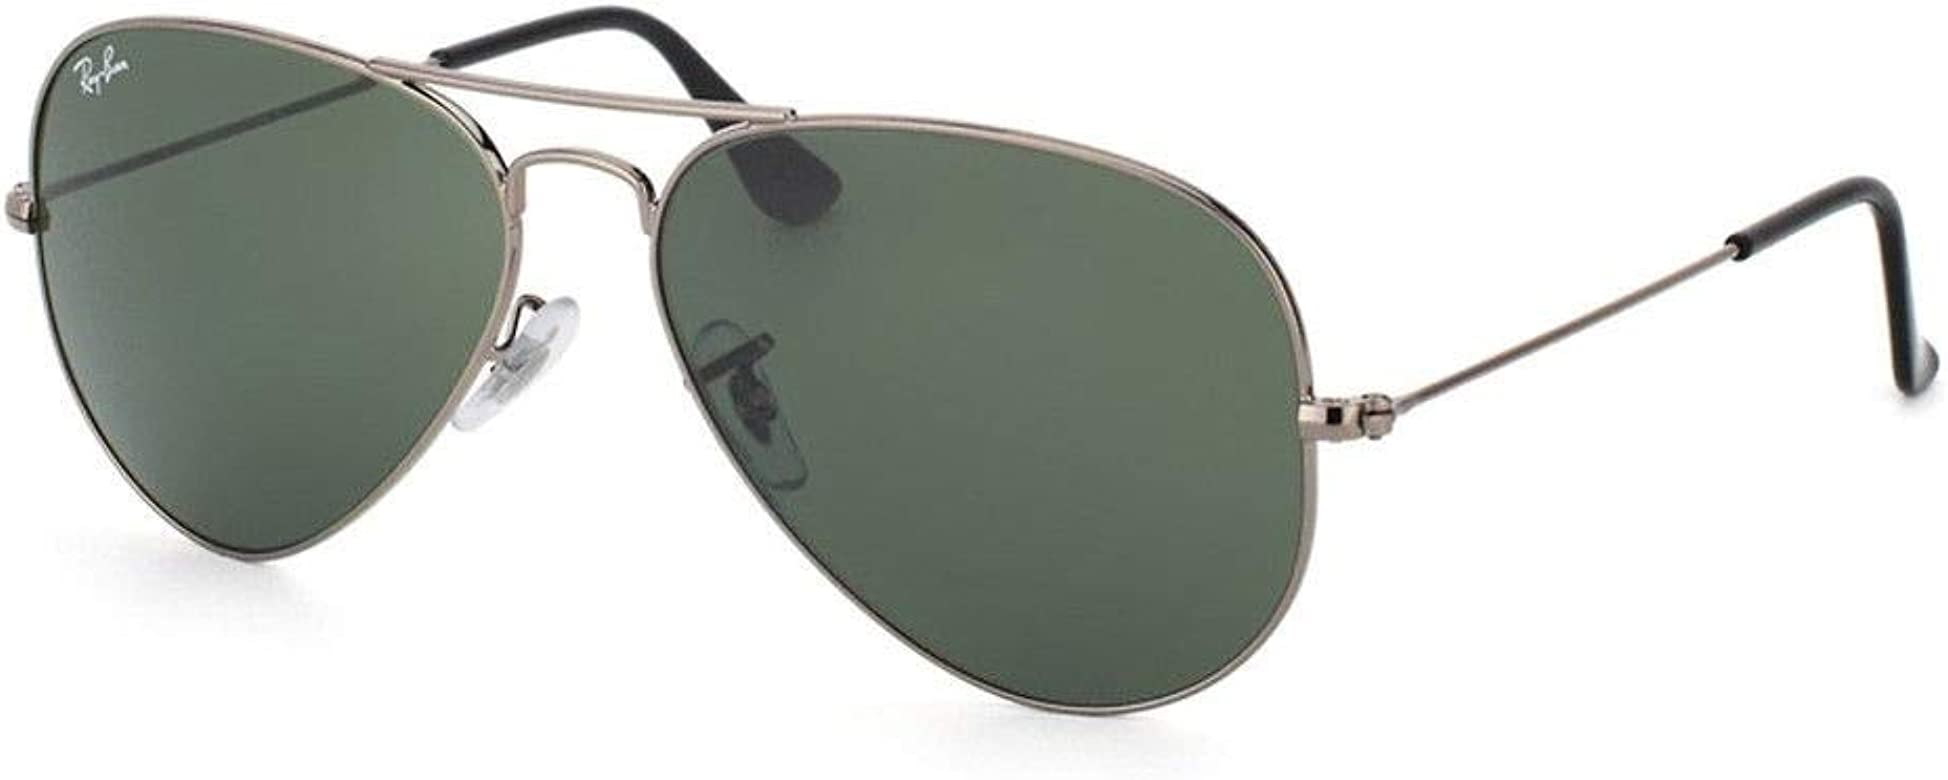 58bb85251 Amazon.com: Authentic Ray-Ban Aviator RB 3025 003/59 58mm Silver / Silver  Mirror Polarized: Clothing